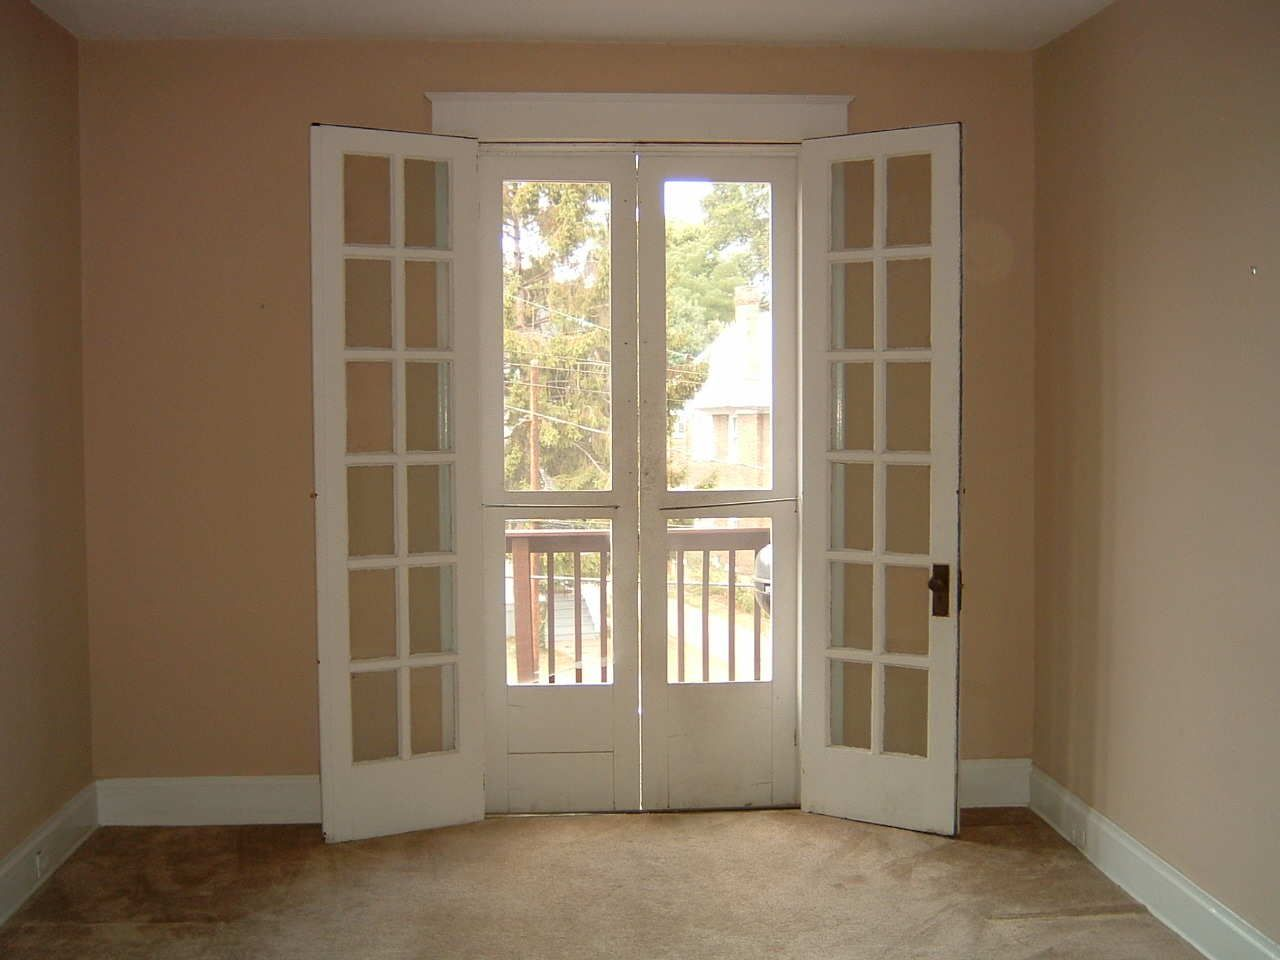 There S My French Doors I Forgot About The Screened Doors